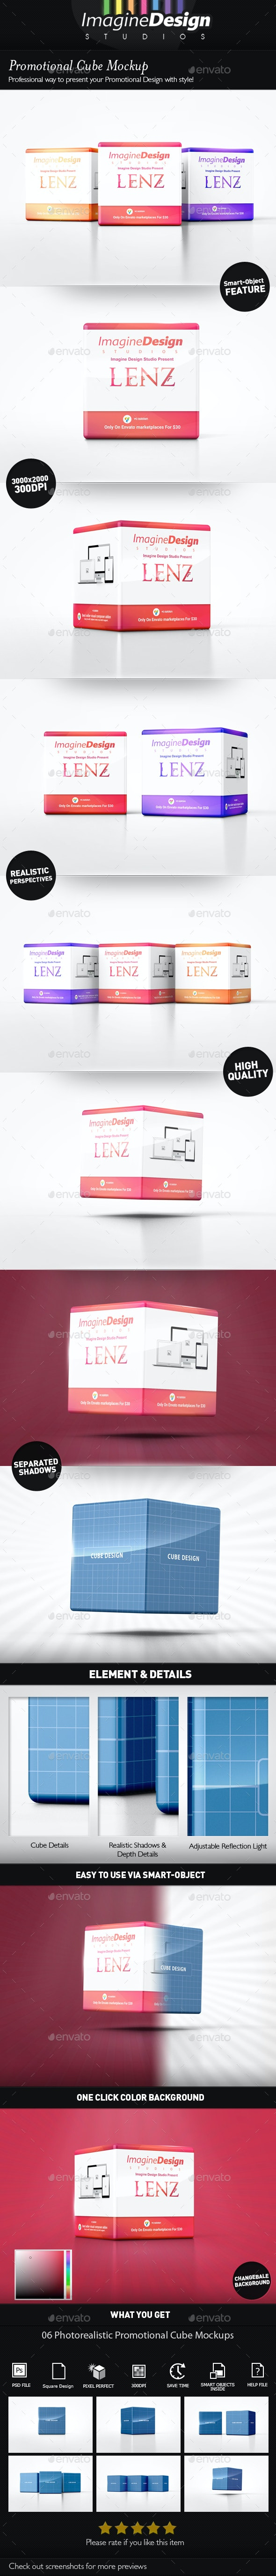 Promotional Cube Display Mockup - Miscellaneous Packaging